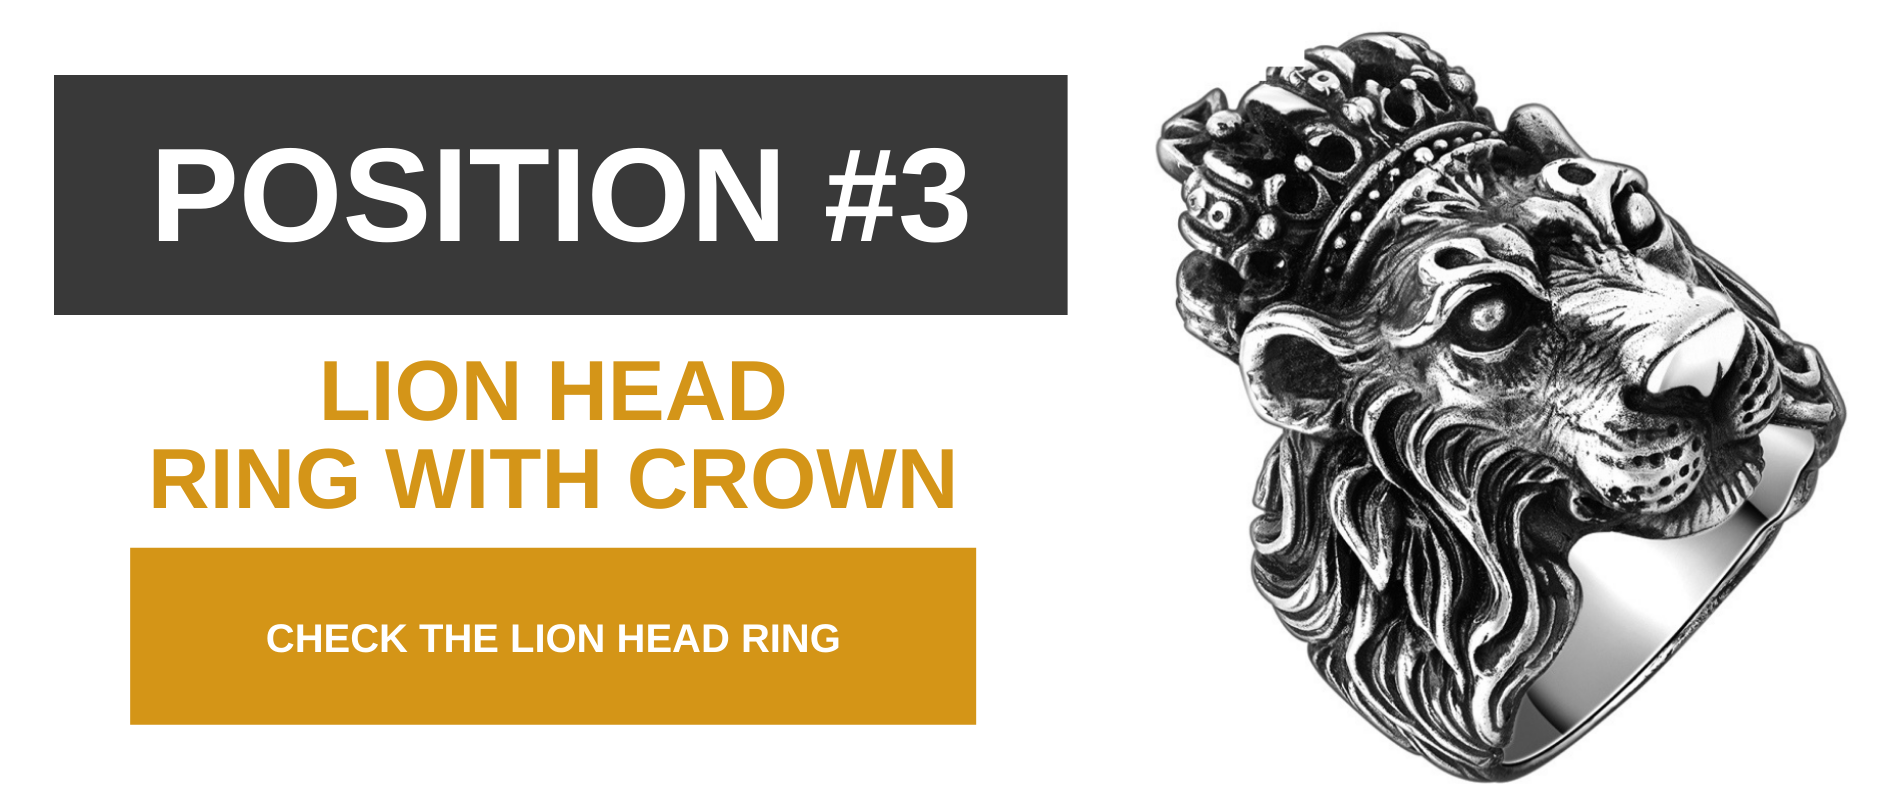 Lion head ring with crown.